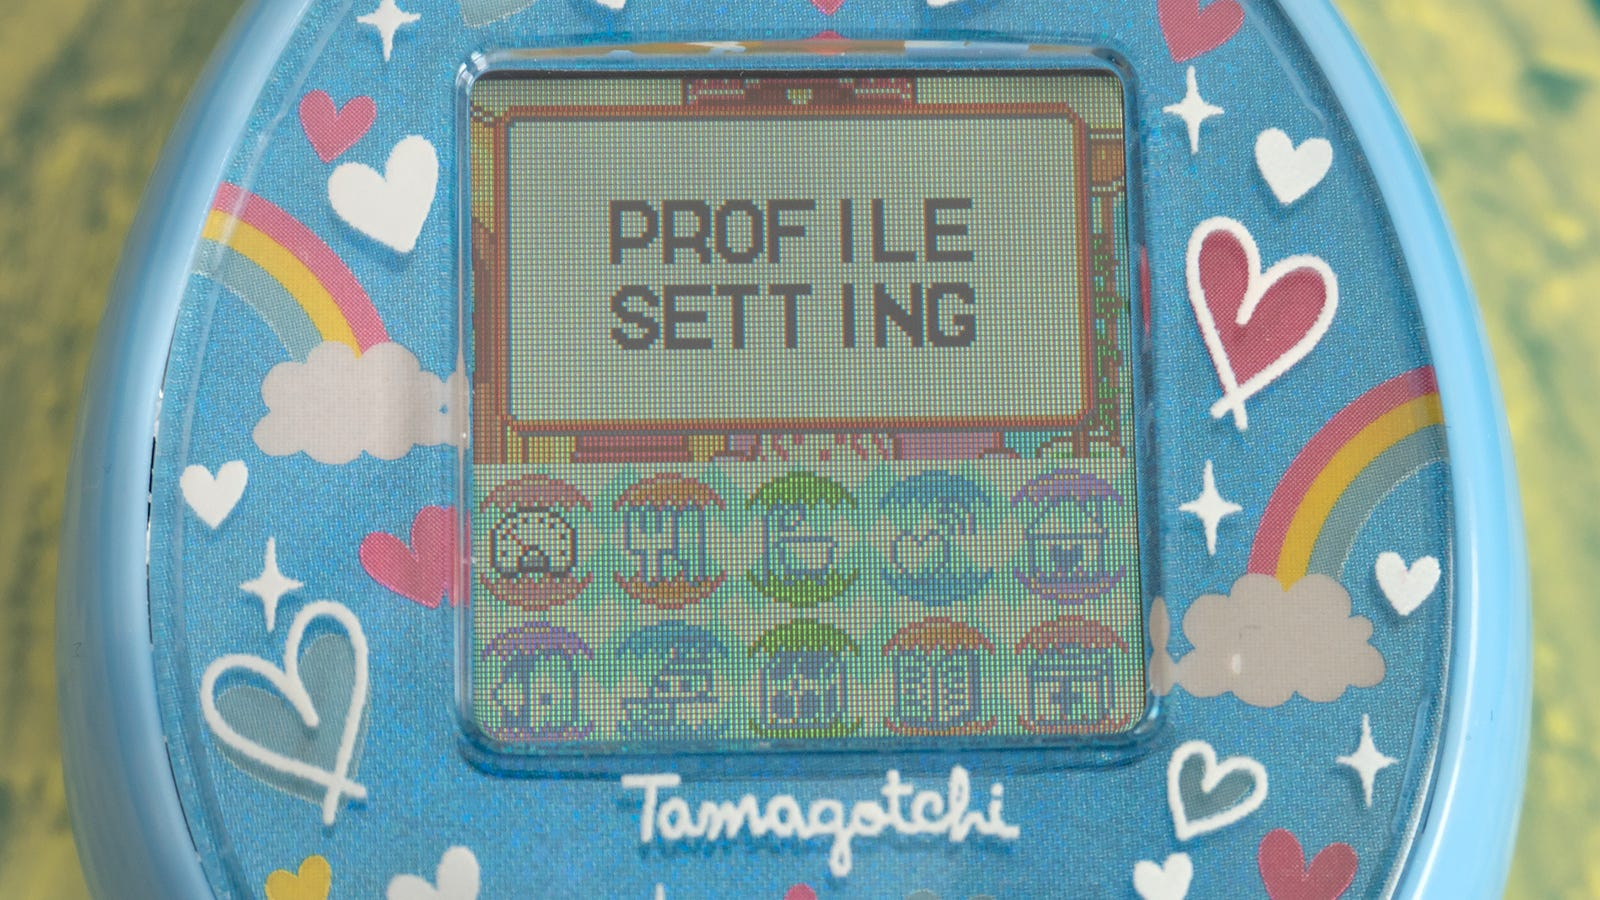 That tiny screen feels a bit cramped when you pop into the Tamagotchi On's menus; there's a lot of options hidden away in many sub-screens. It might take a while for you to learn your way around.